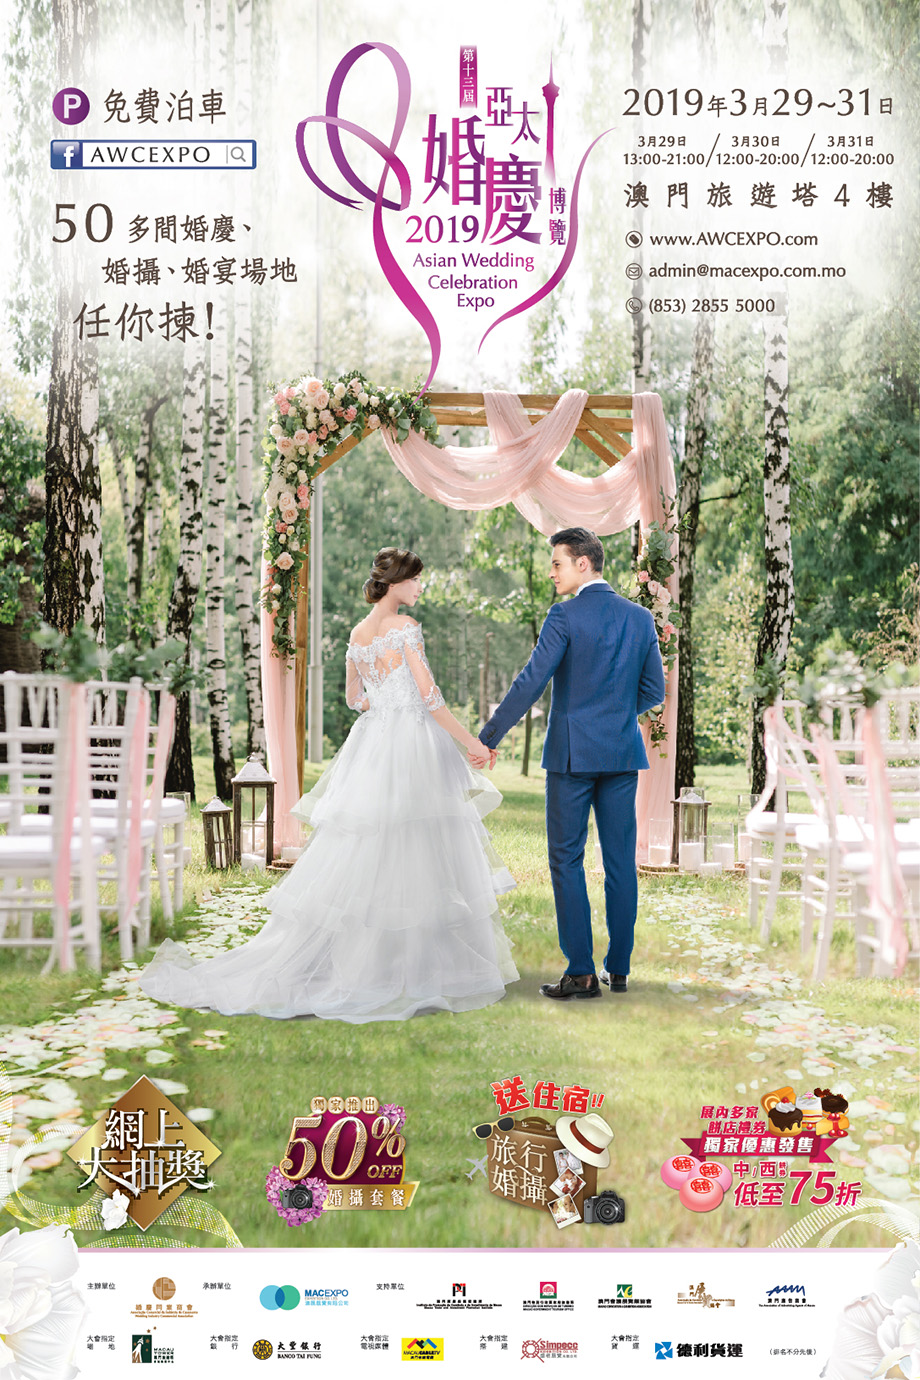 Asian Wedding Celebration Expo 2019 - Macau Tower